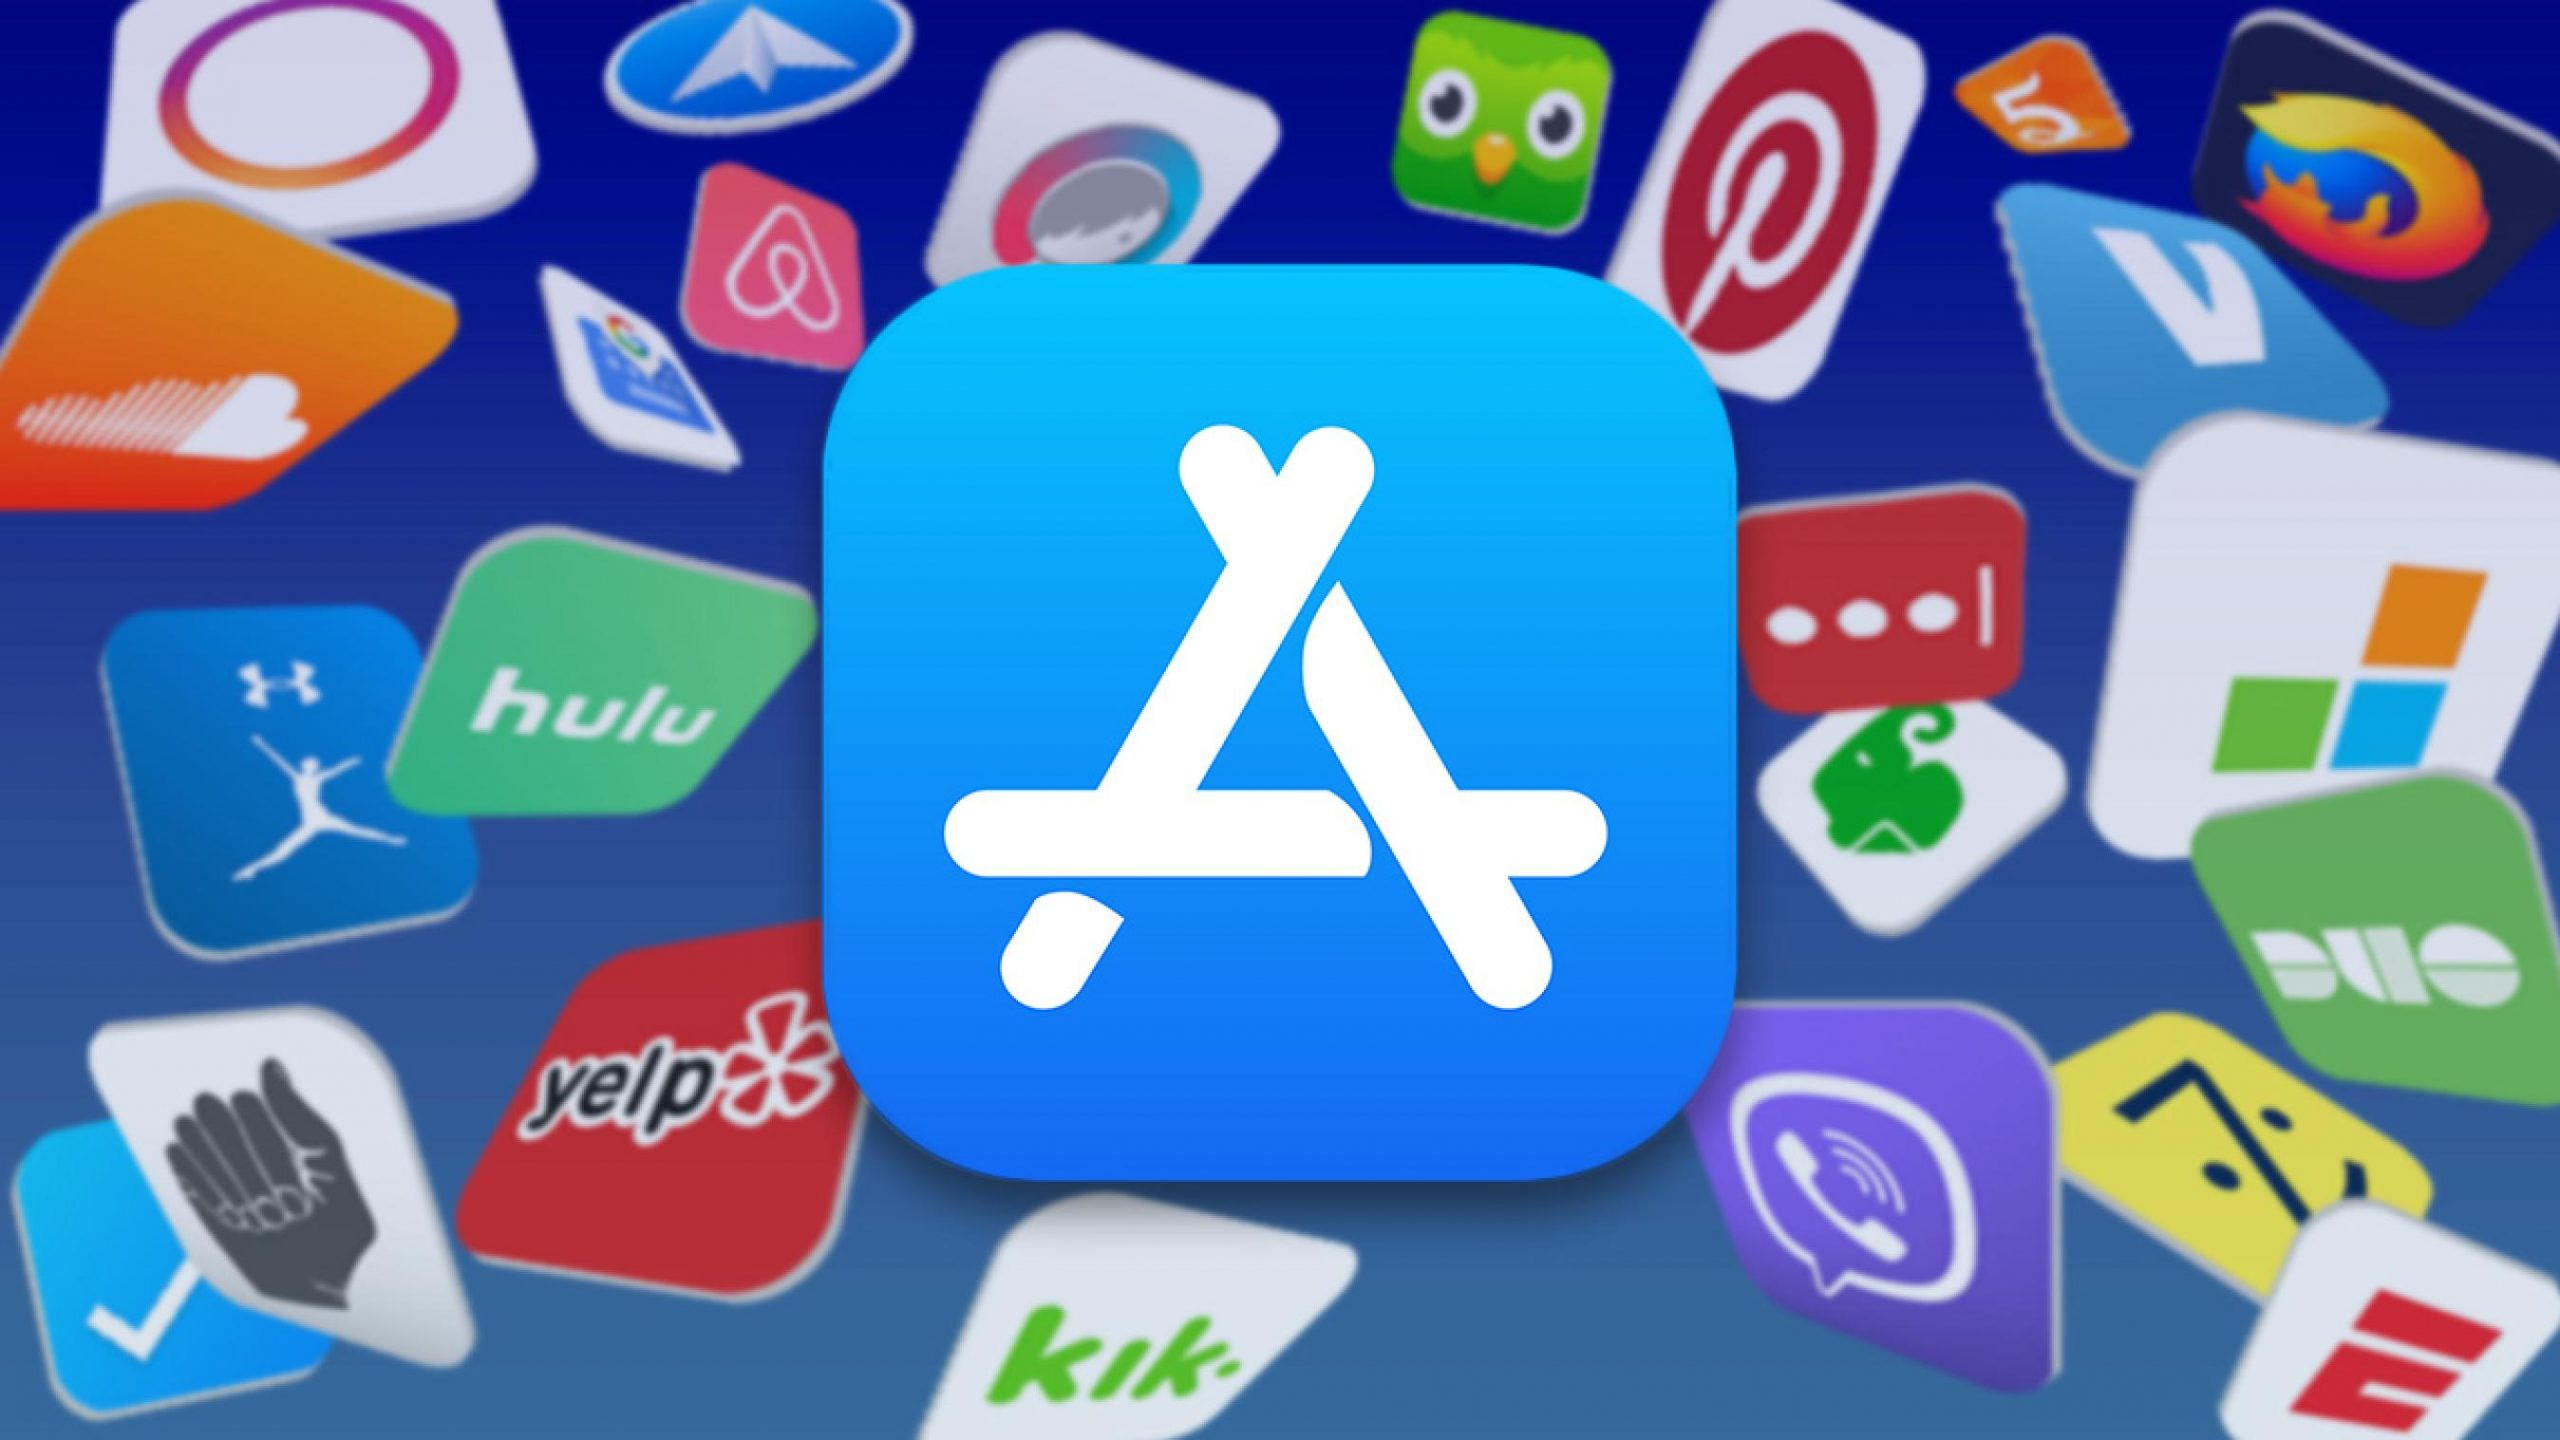 TOP 10 APPLE APP STORE CATEGORIES scaled